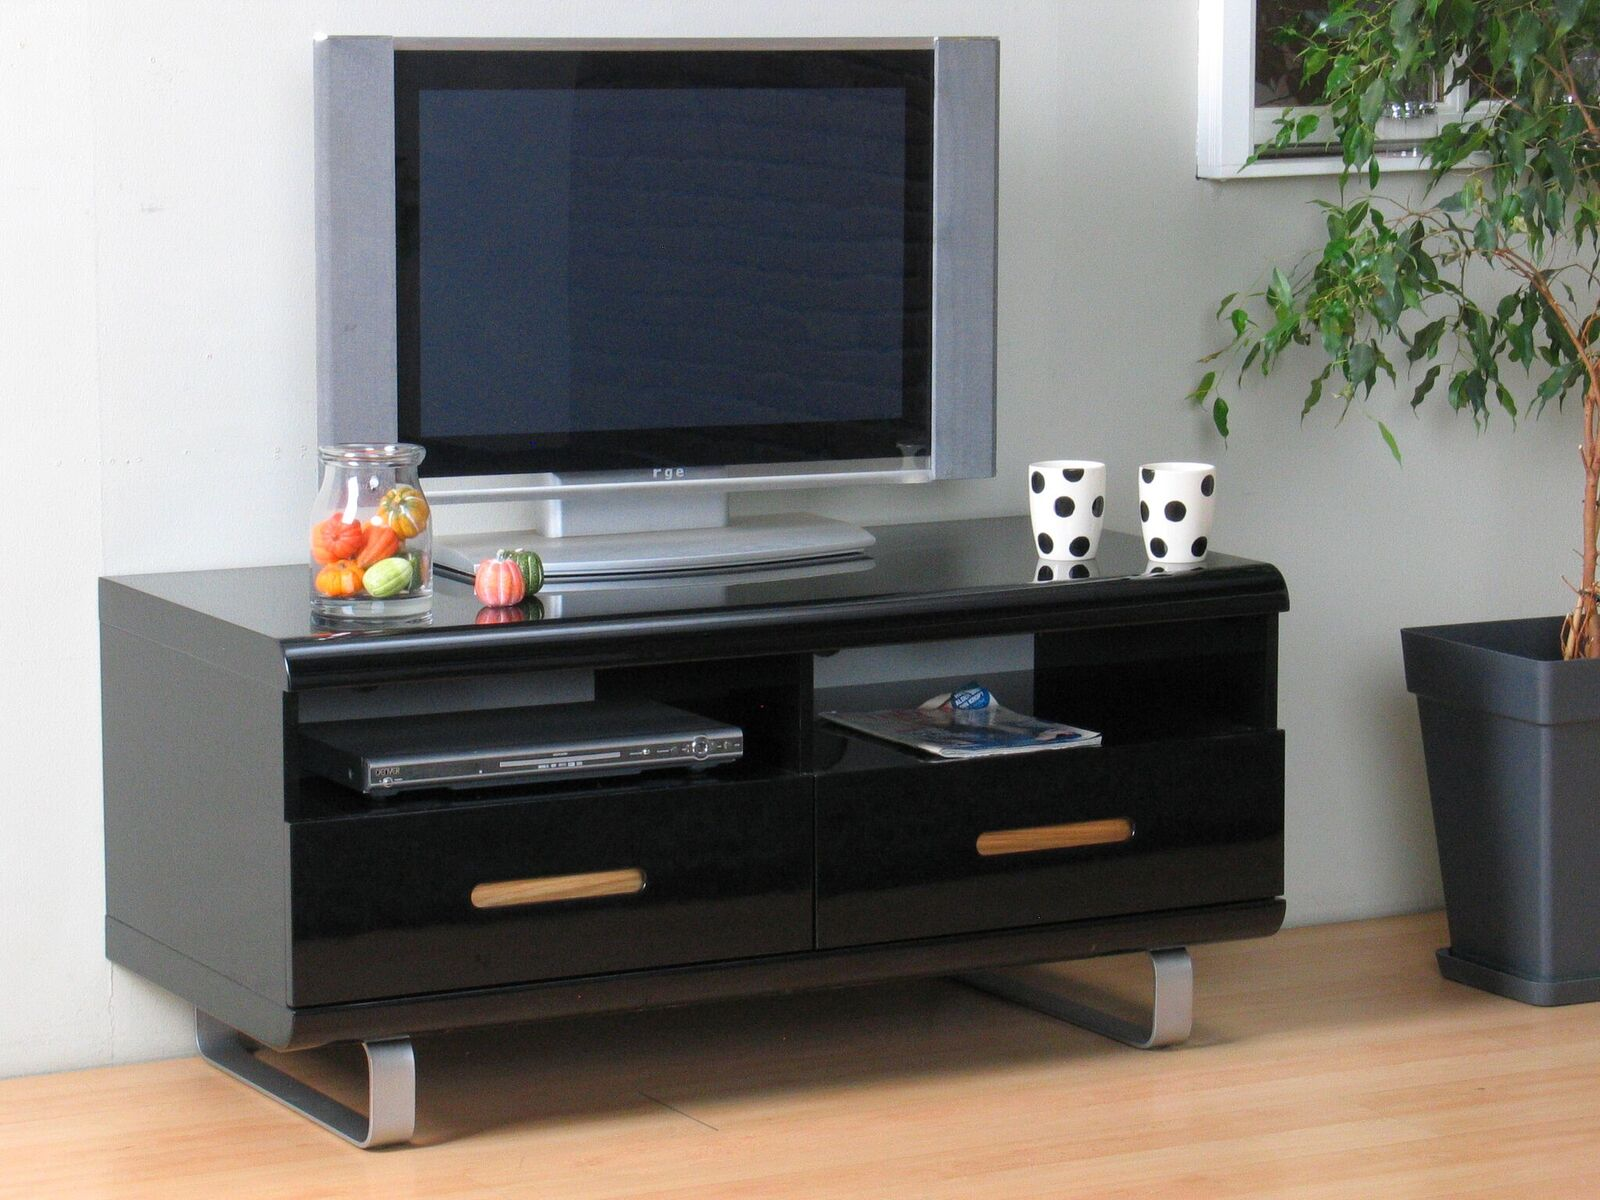 tv lowboard spacy hochglanz schwarz kommode sideboard fernseher schrank kaufen bei dtg dynamic. Black Bedroom Furniture Sets. Home Design Ideas